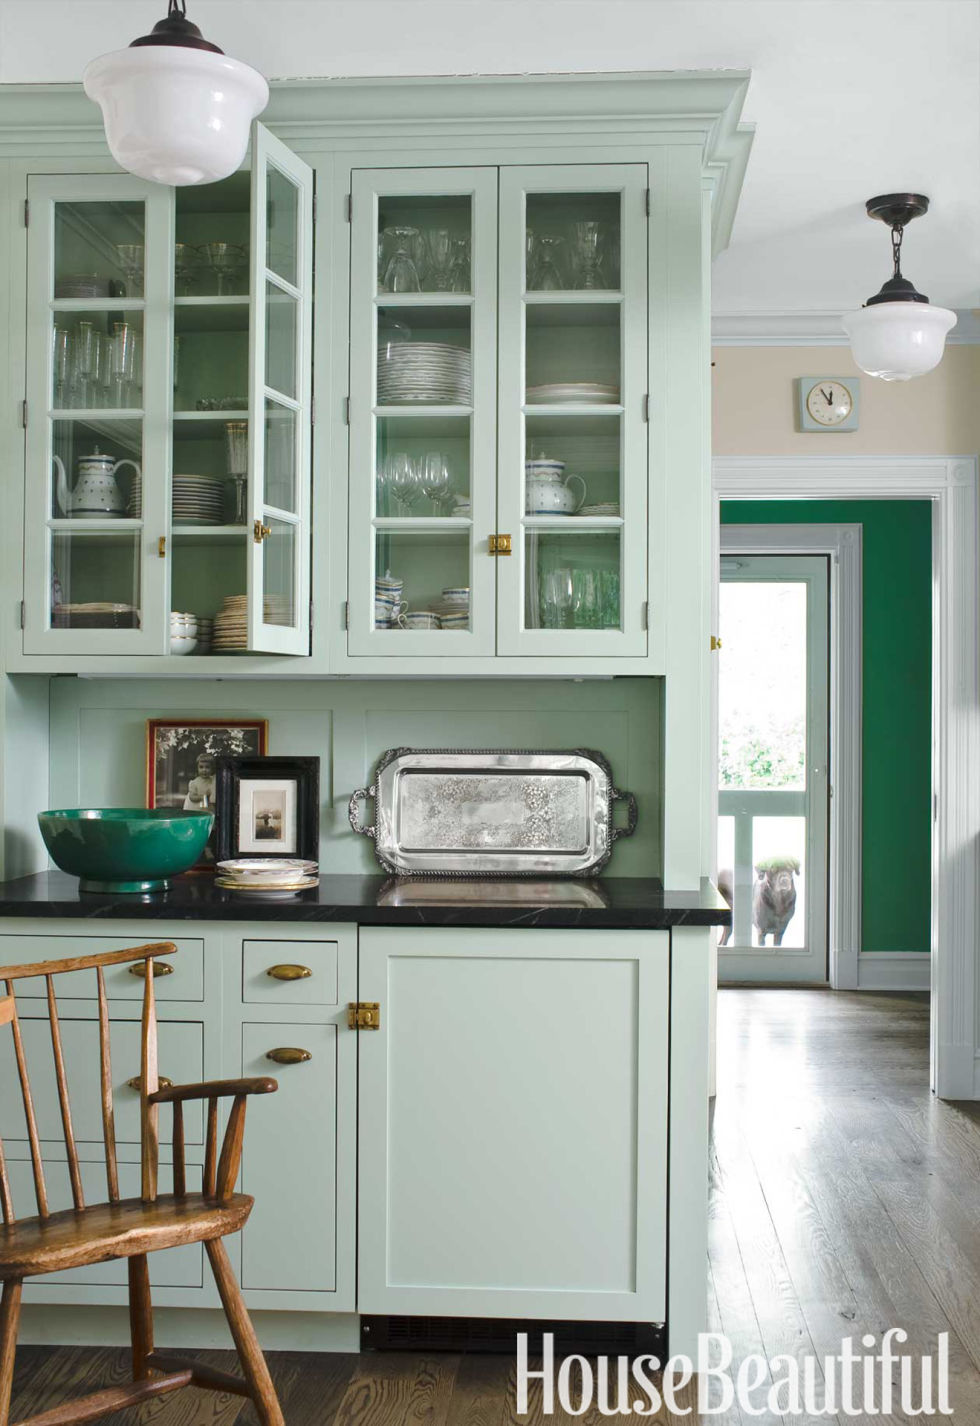 farmhouse kitchen design - old fashioned kitchen